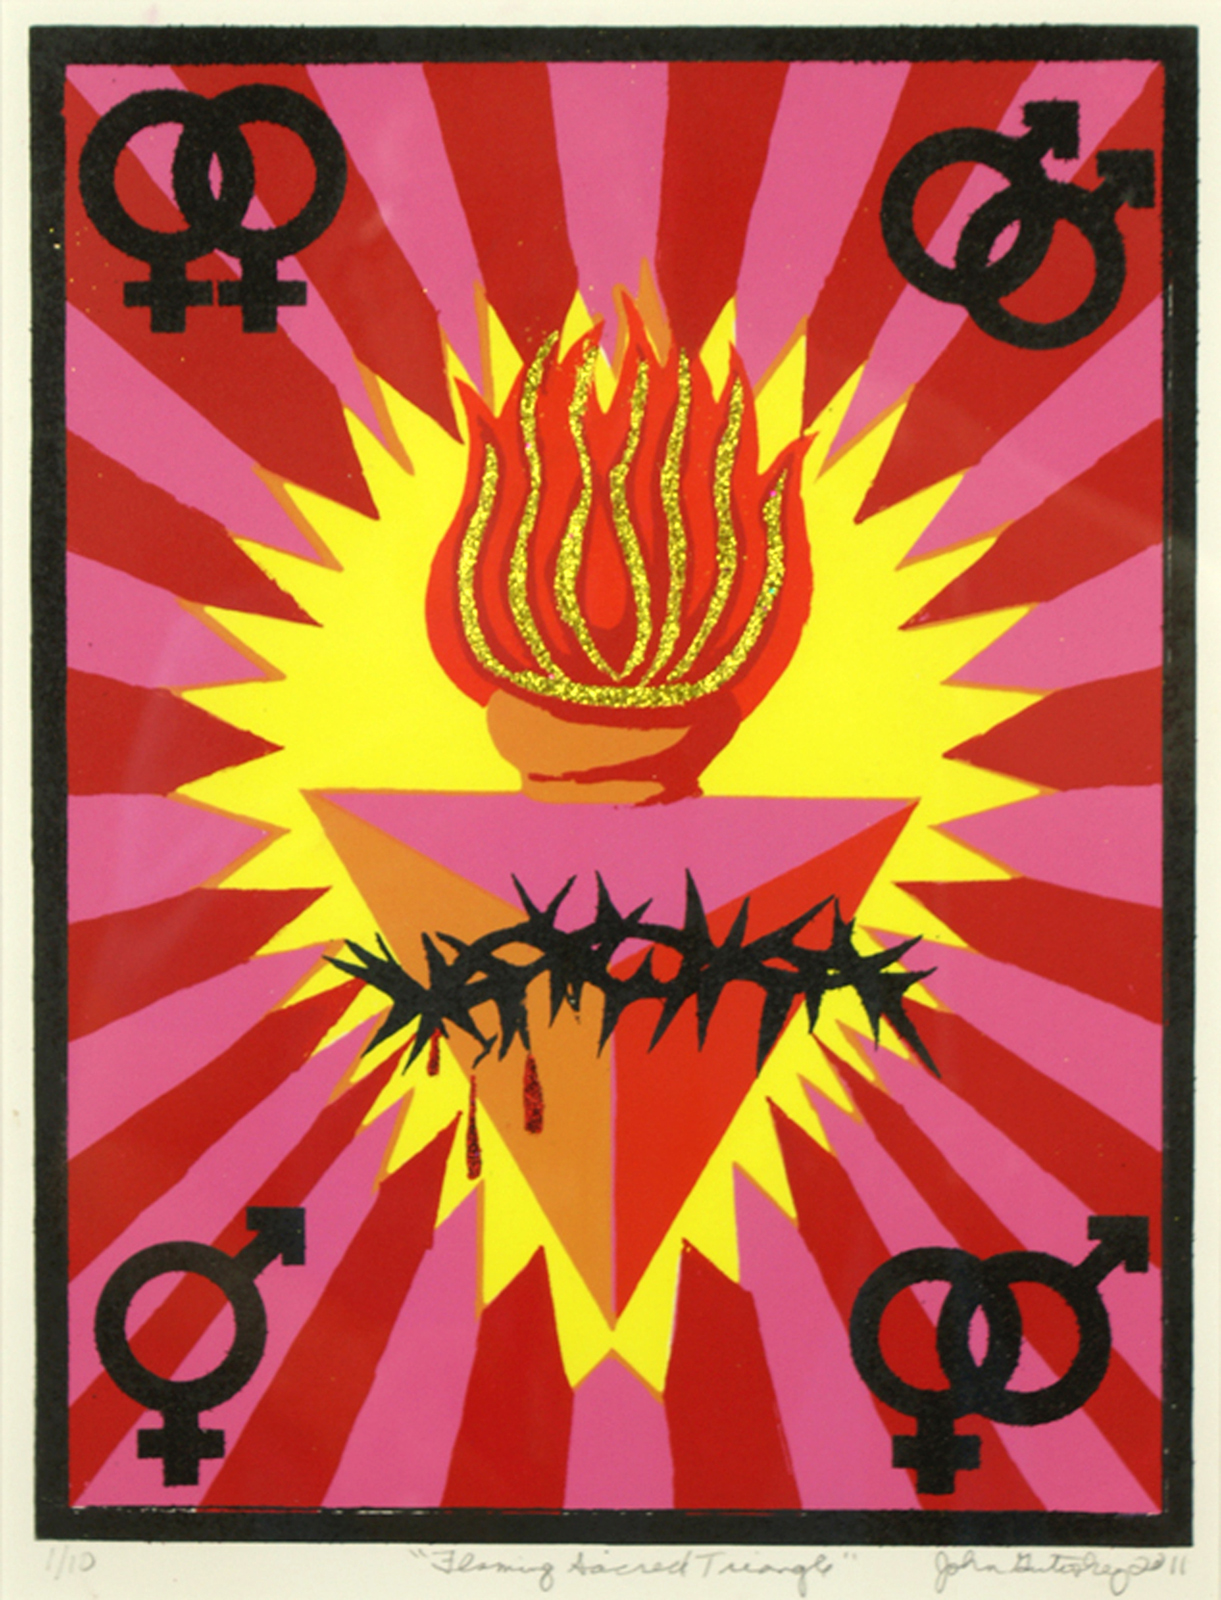 ""\""""Flaming Sacred Triangle""""     silk screen and glitter on Arches 88     15""""h x 11""""w     2011     Edition of 10""1221|1600|?|en|2|9787d61a759e08244c385af18ce9b177|False|UNSURE|0.30186325311660767